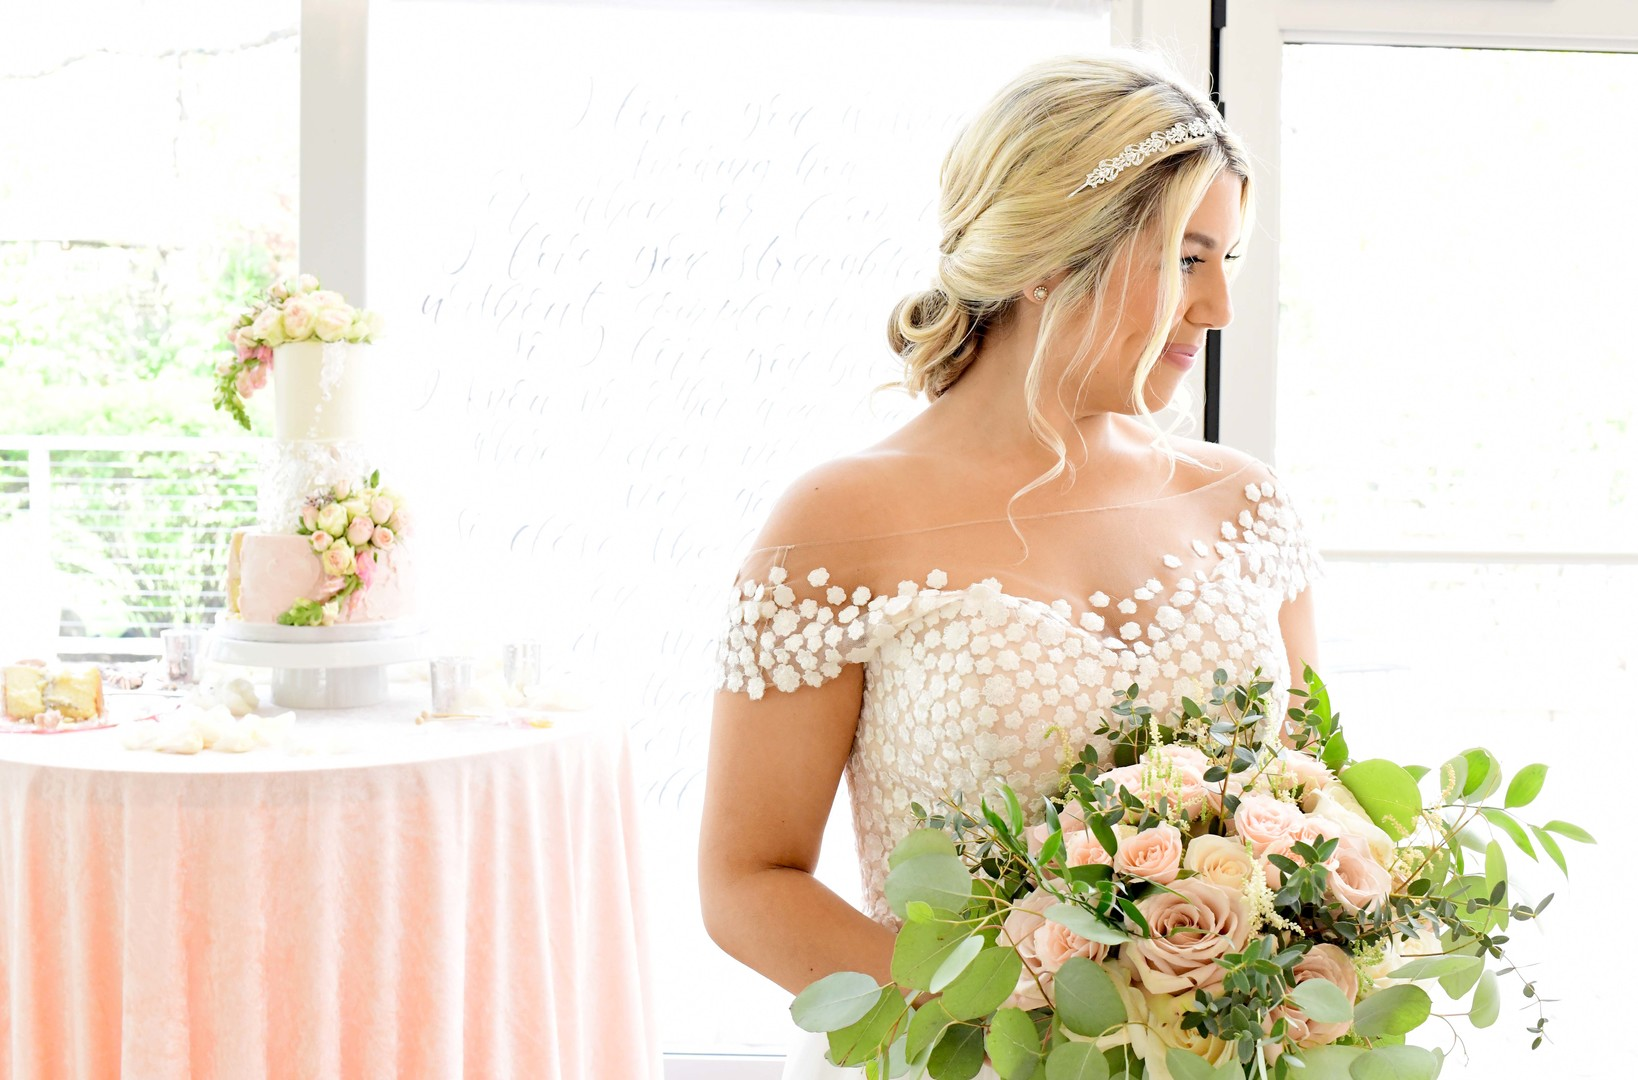 Bridal portrait: Romantic ivory and rose gold wedding inspiration captured by Lori Sapio. See more elegant wedding ideas at CHItheeWED.com!